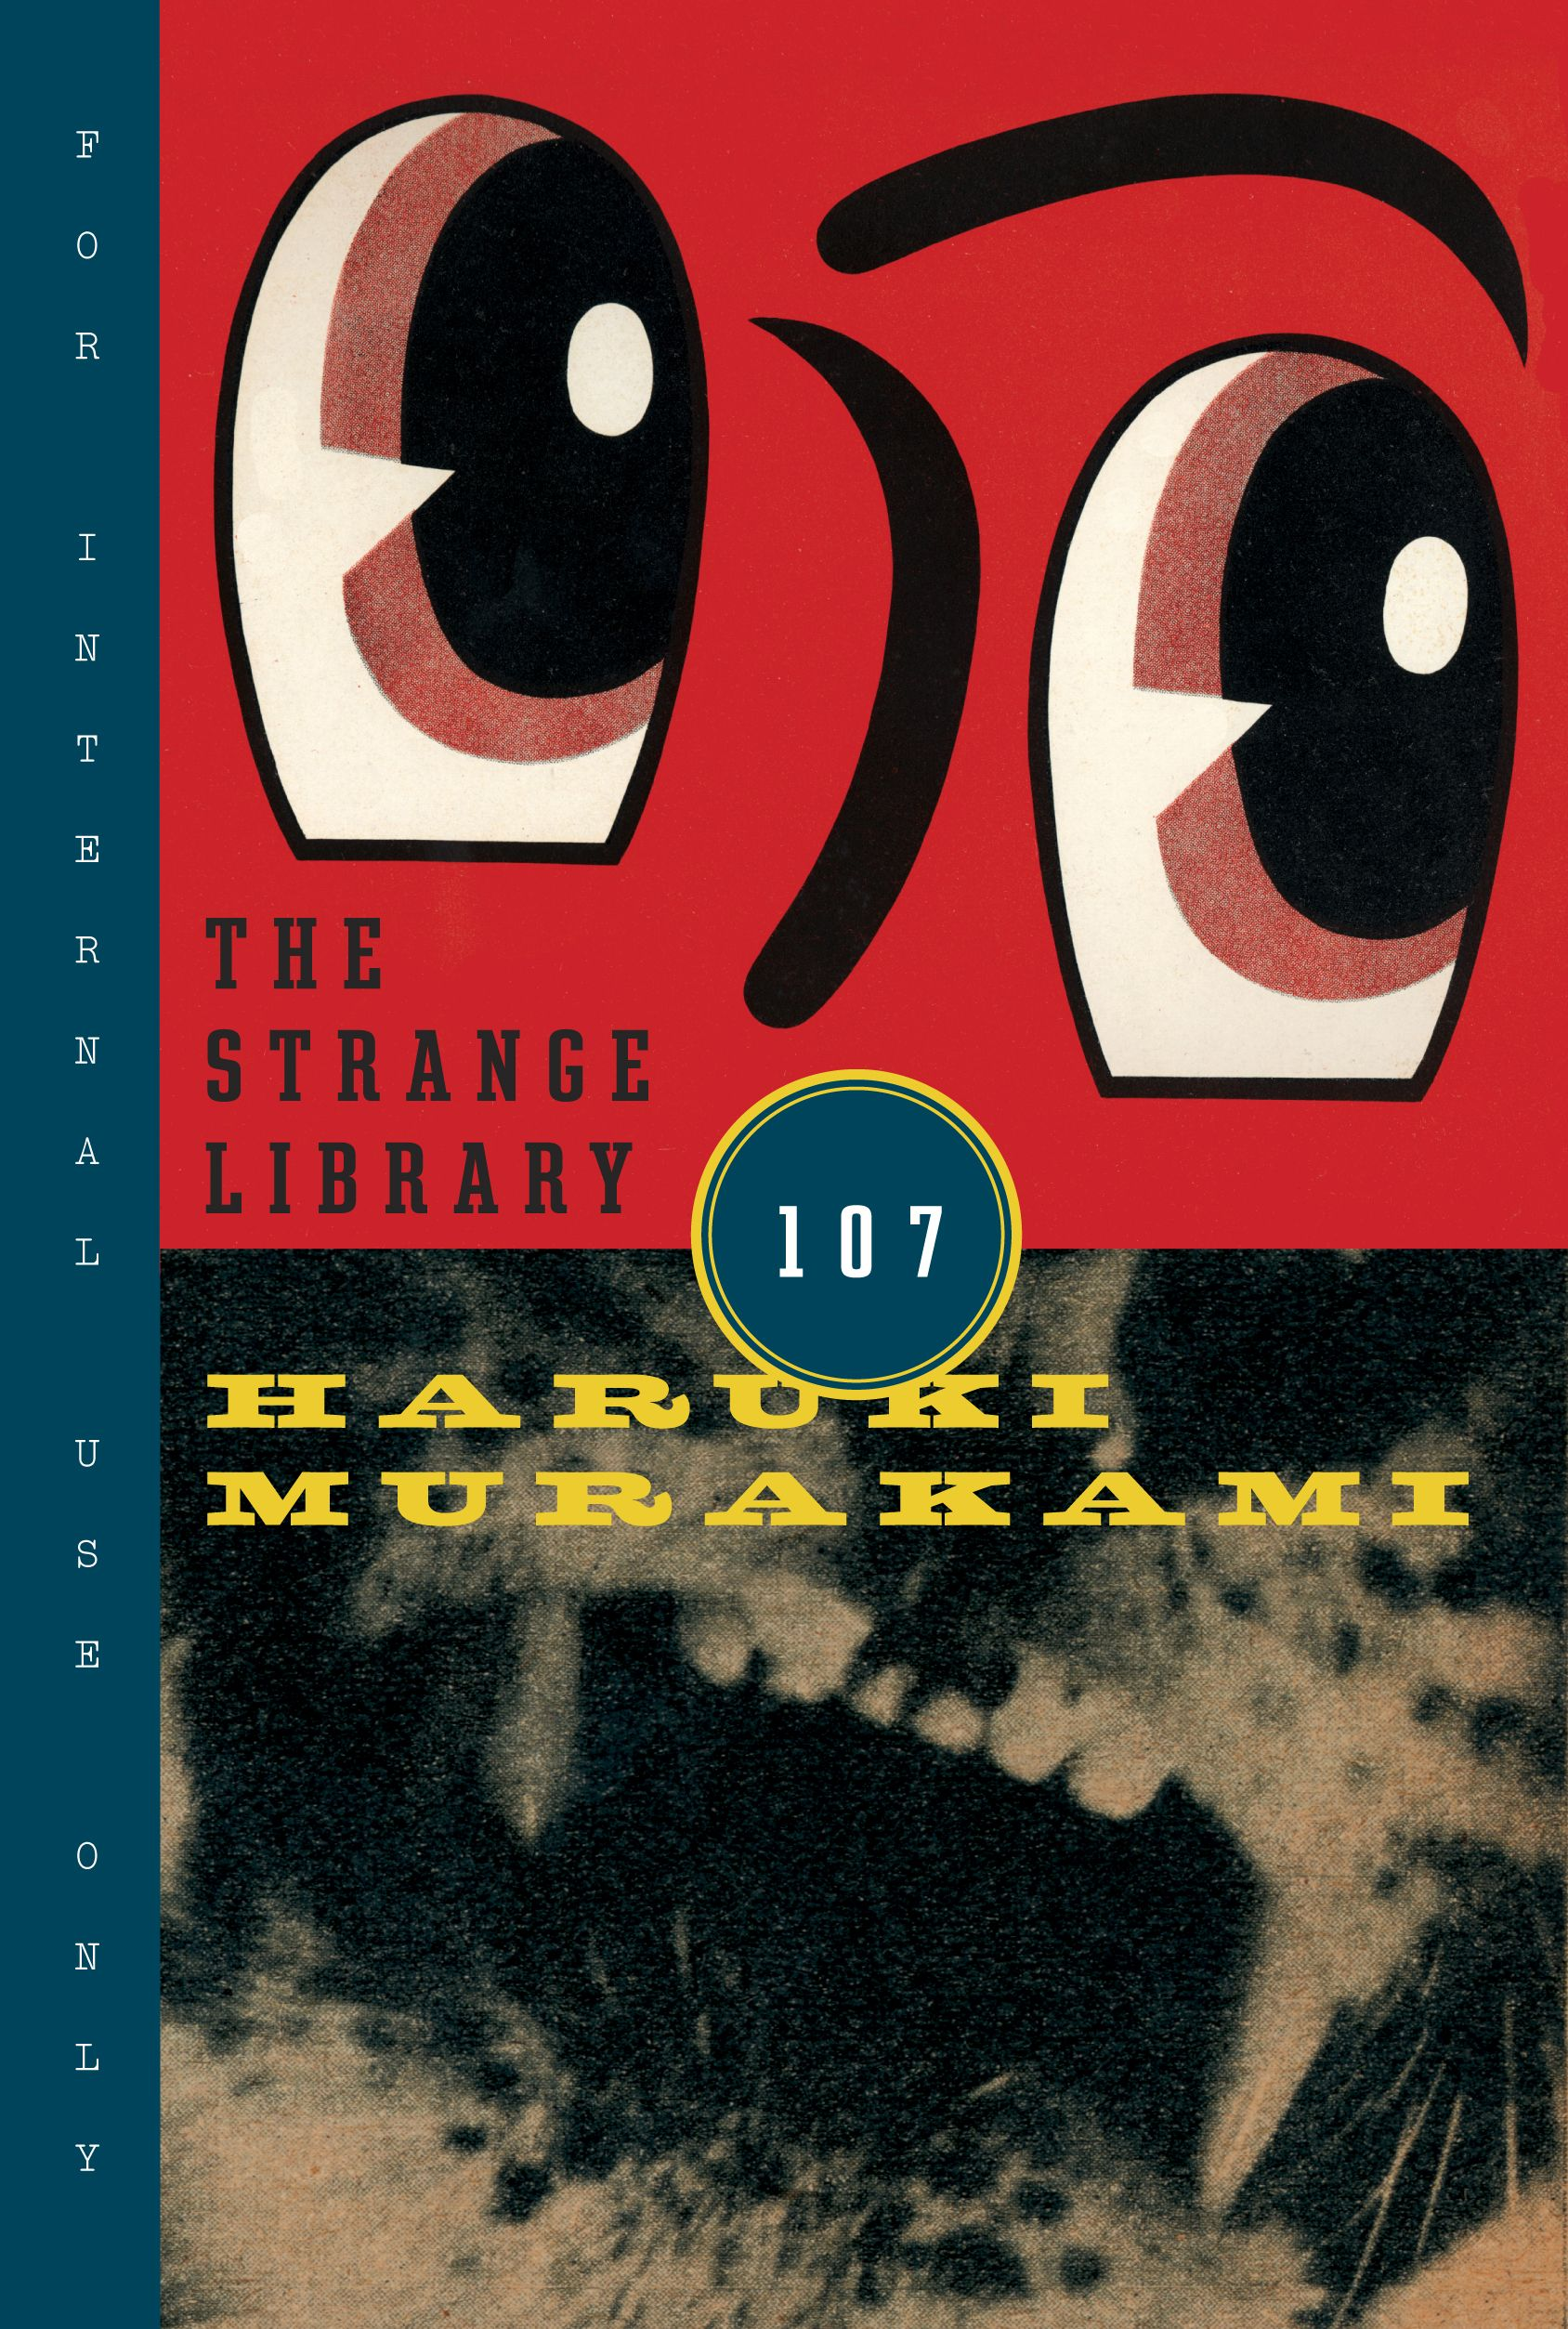 Book cover the strange library by chip kidd haruki